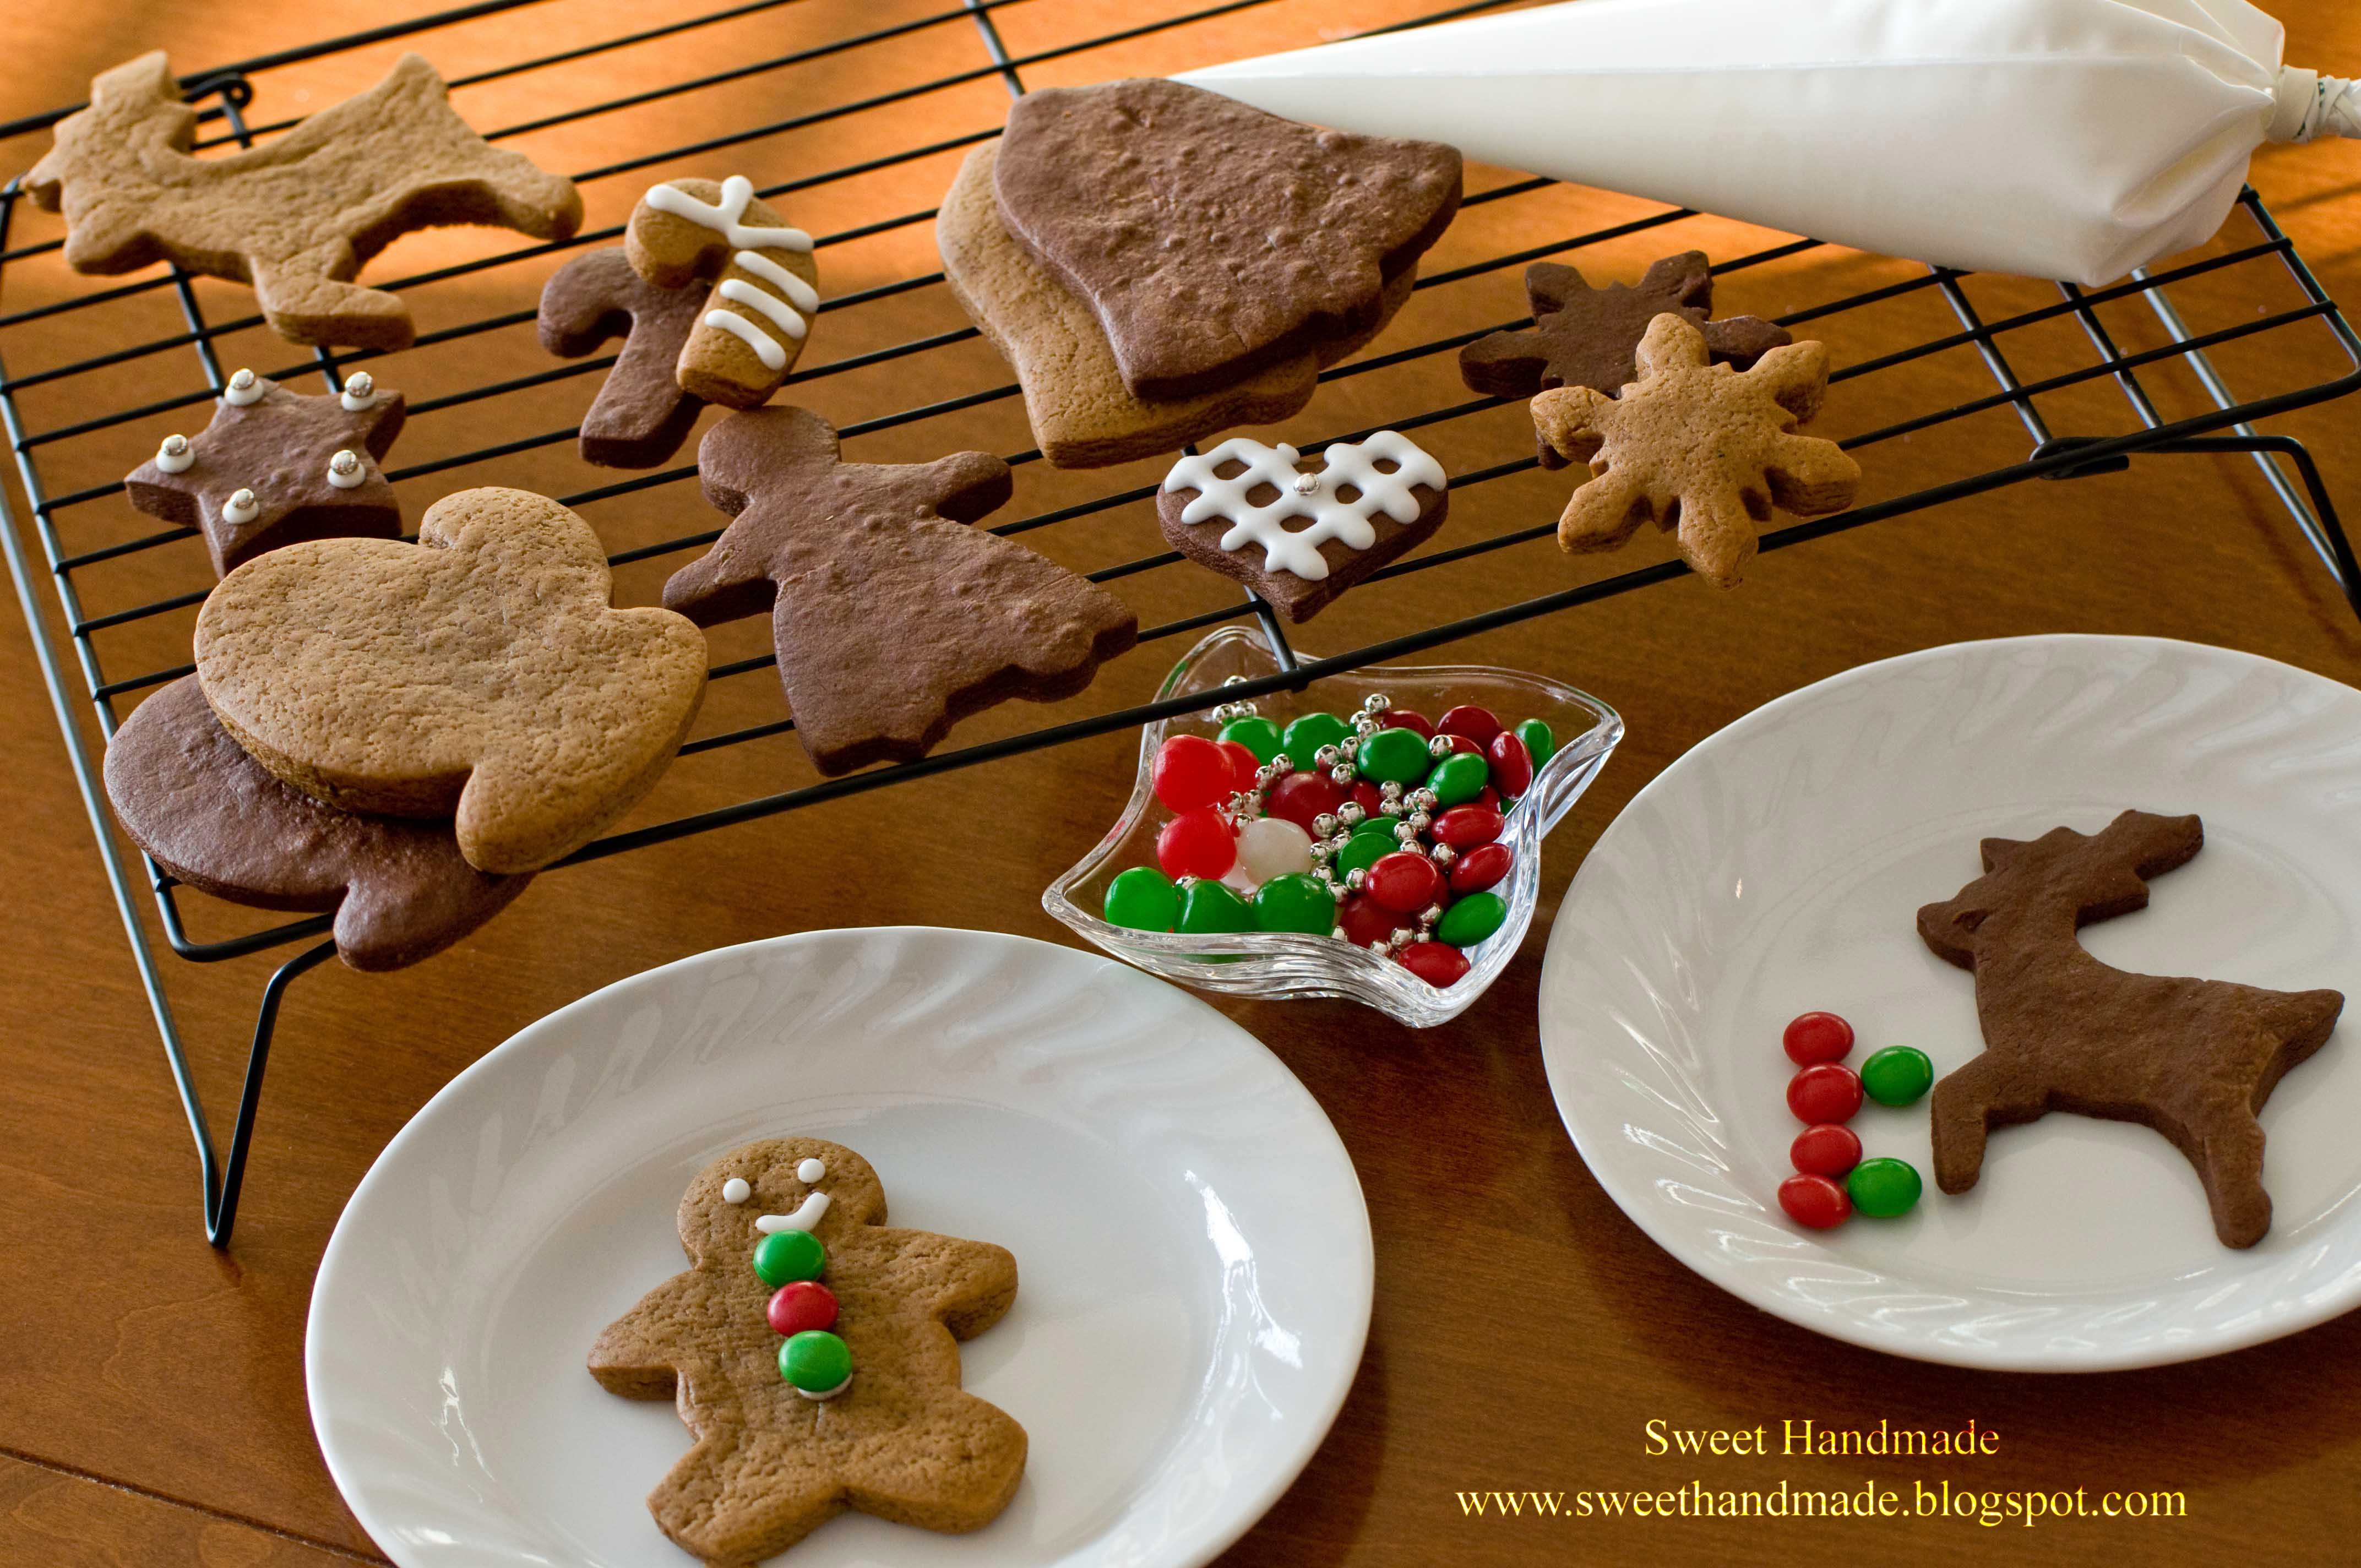 sweet handmade cookies christmas cookie decorating kit mitten cookies gingerbread boy cookies